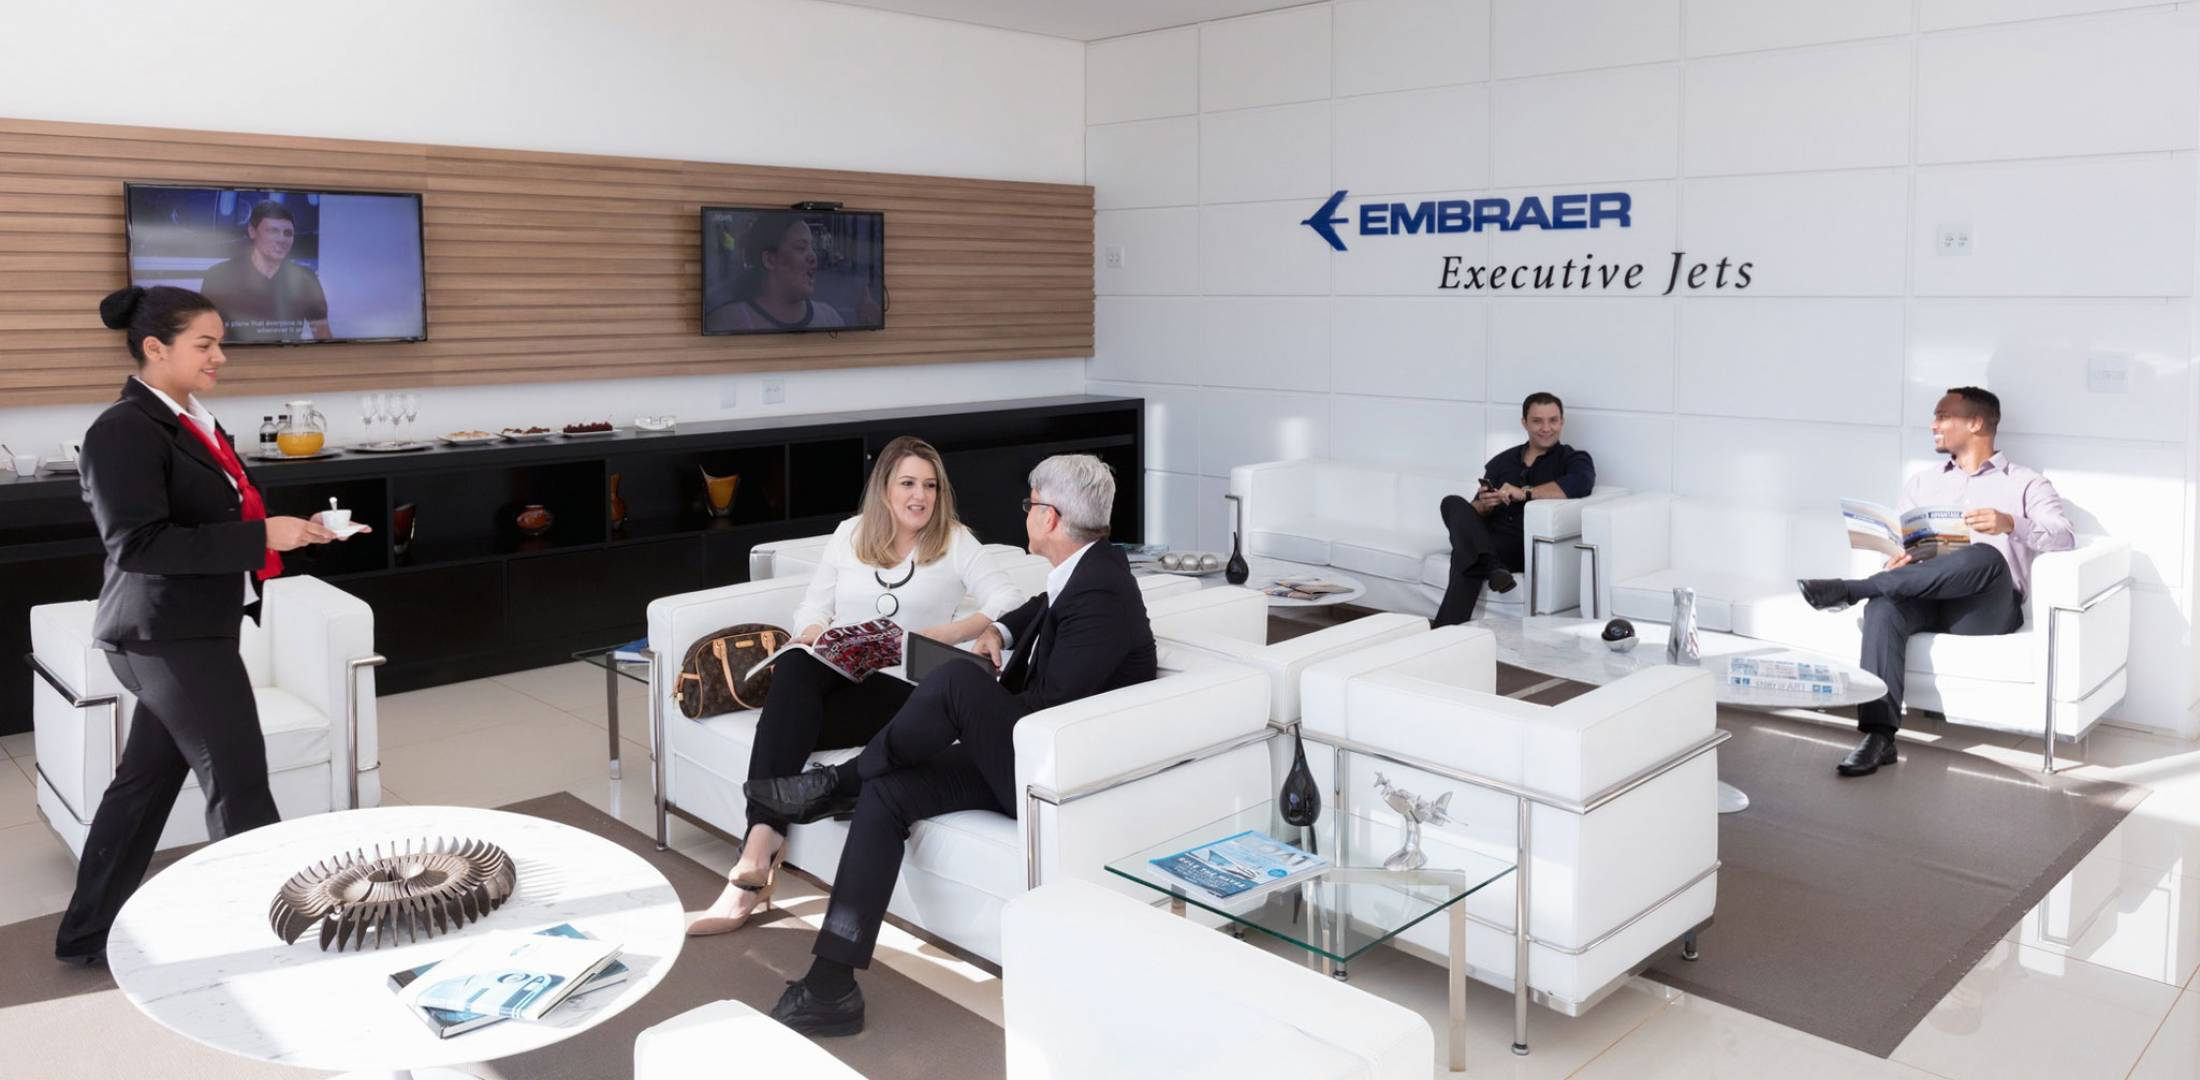 People gathered in Embraer lounge